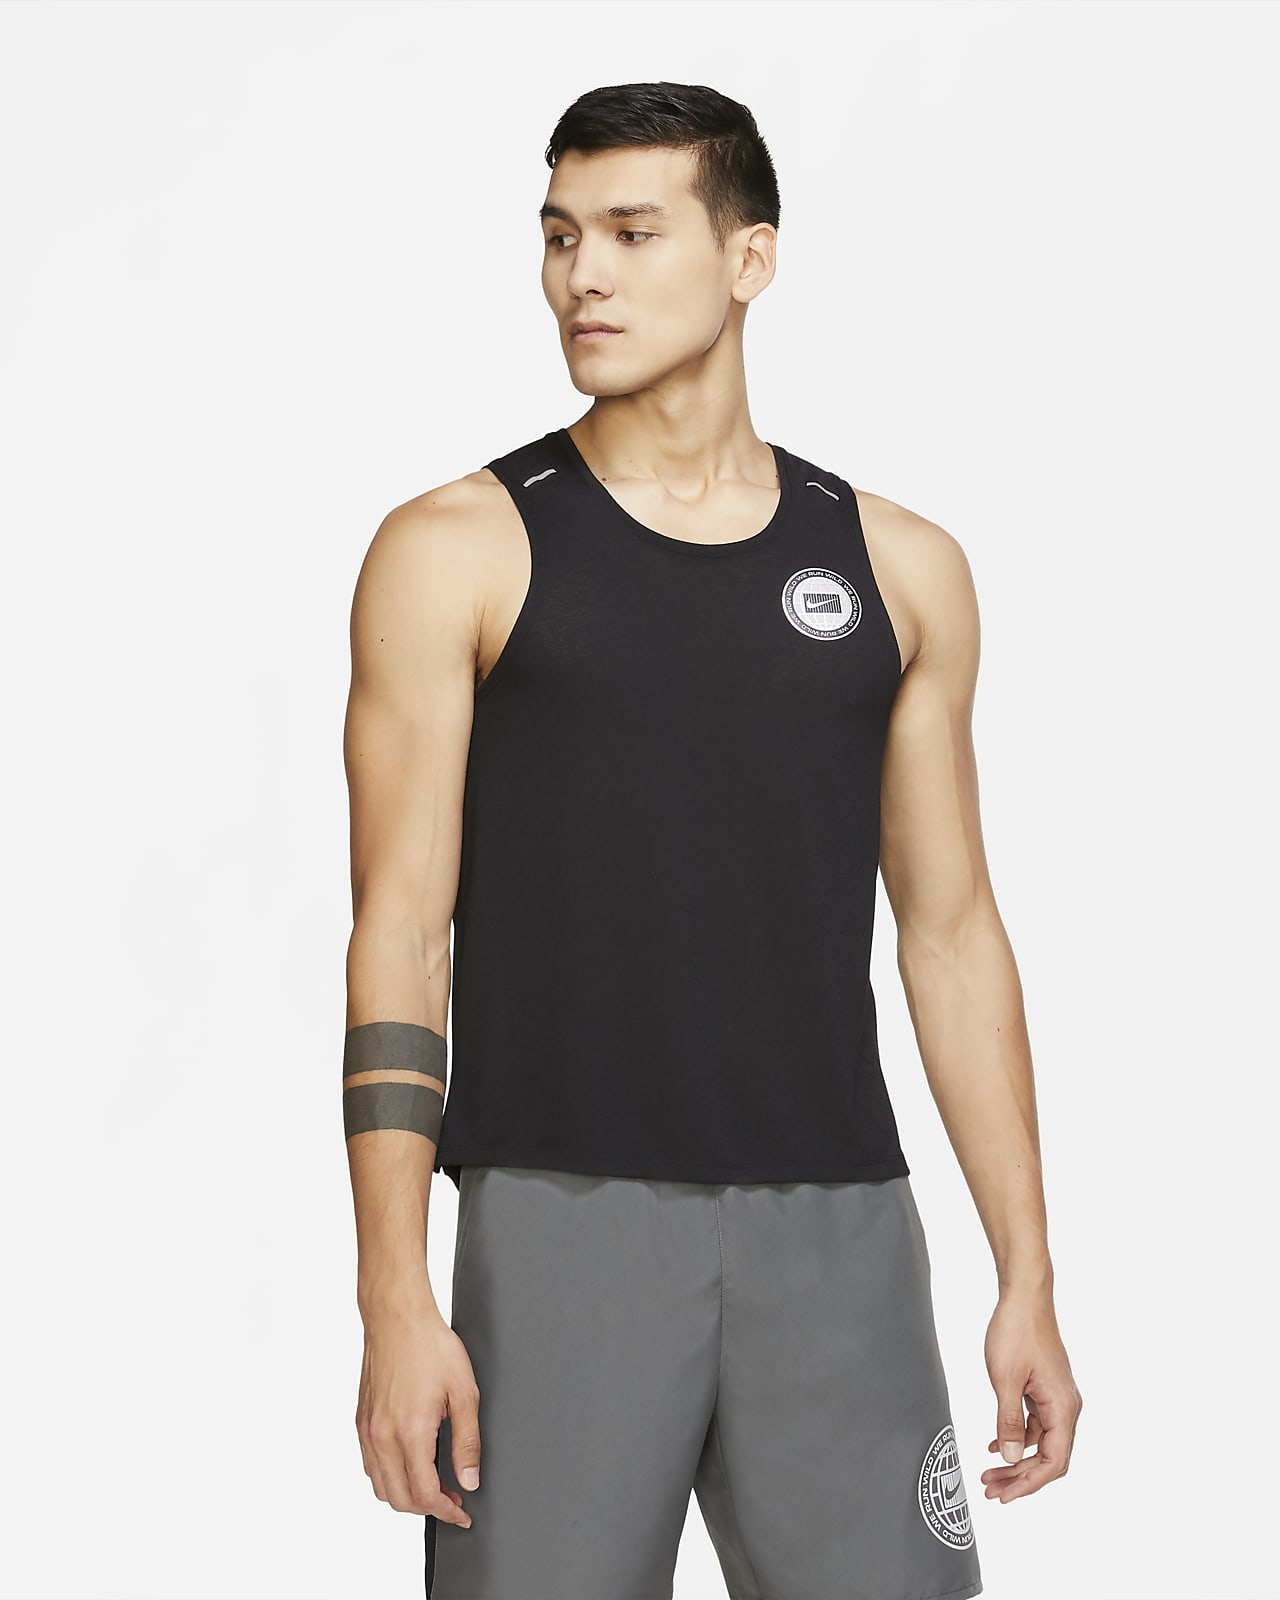 Nike Dri-FIT Miler Wild Run Men's Graphic Running Tank